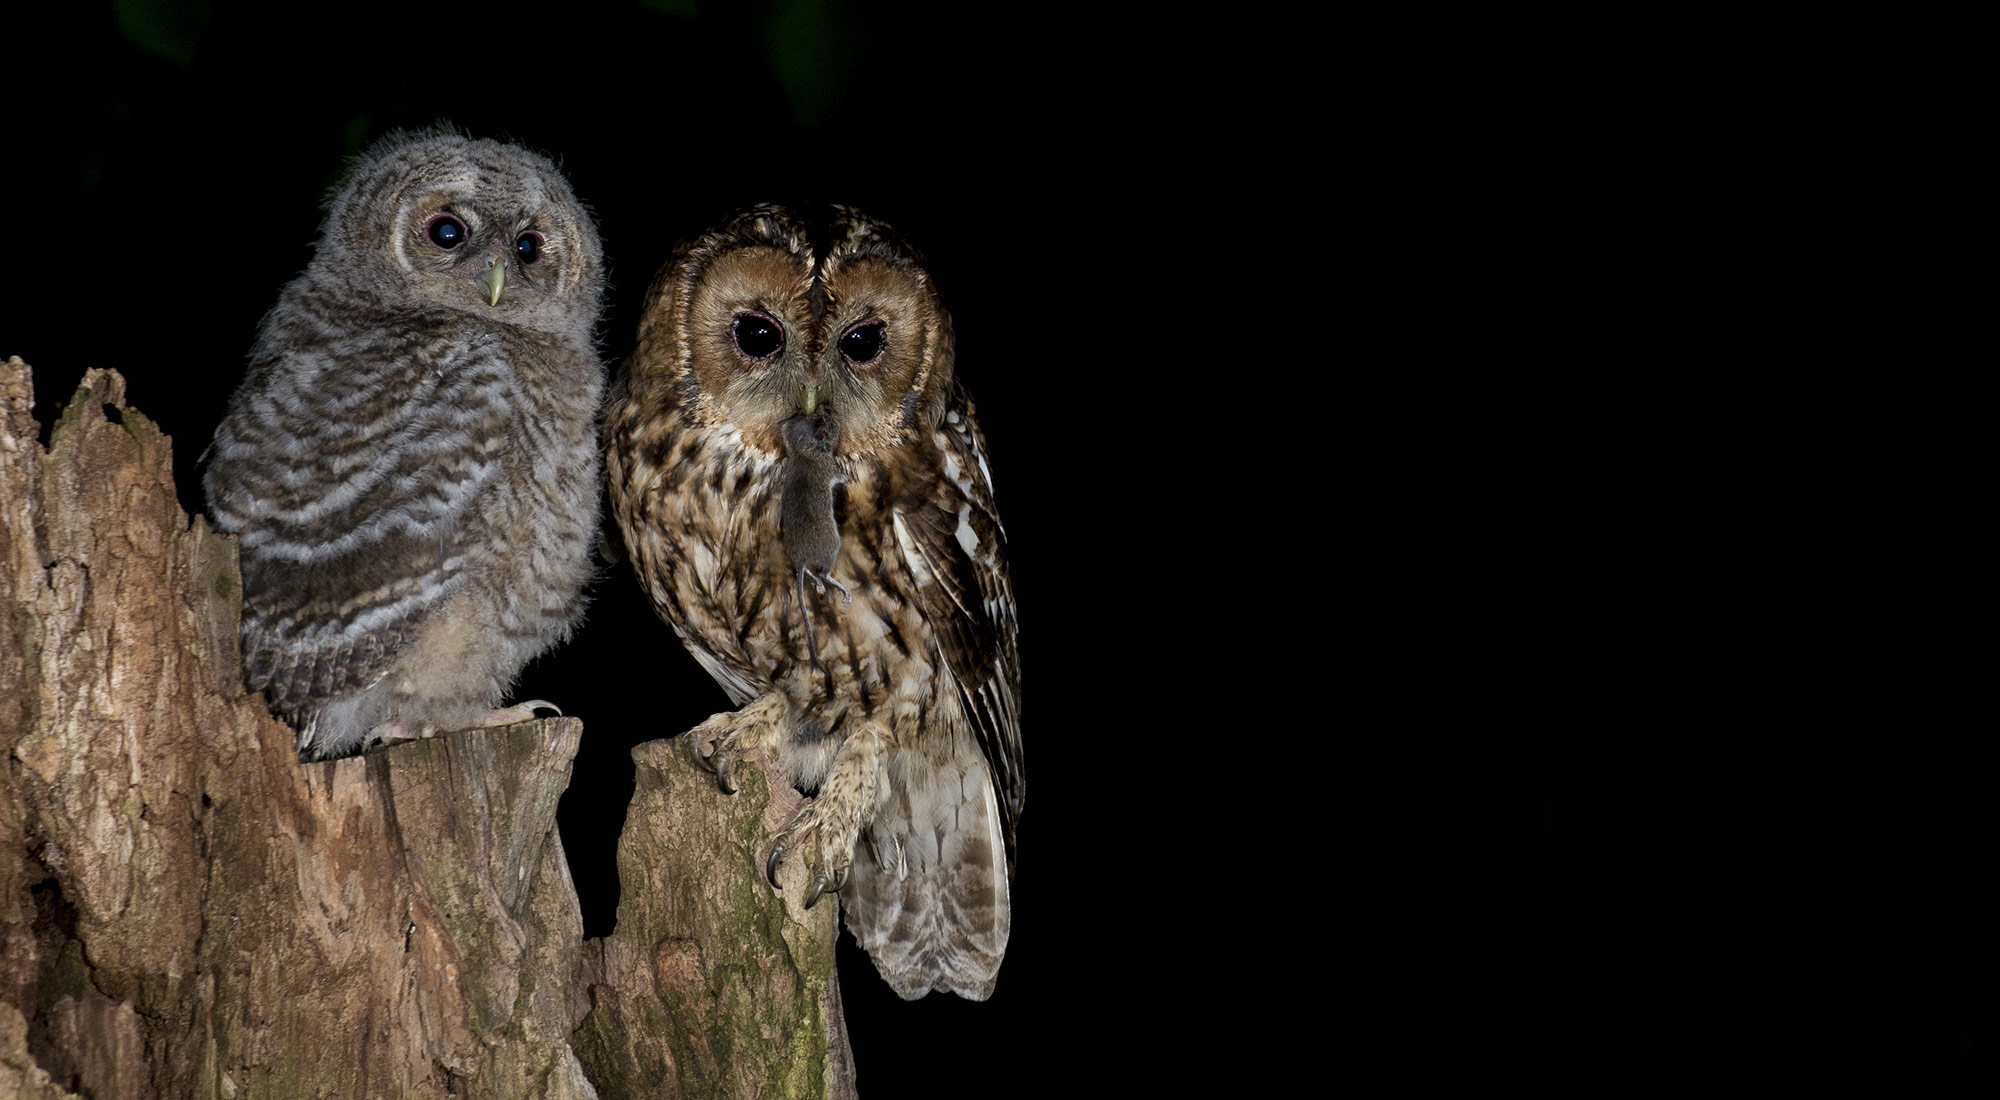 Wildlife Photography Hides Hide photography Bourne Lincolnshire nest site old tree hole adult juvenile feeding wood mouse flash scaffold hide canvas hide tom Robinson nikon tawny owl night spring